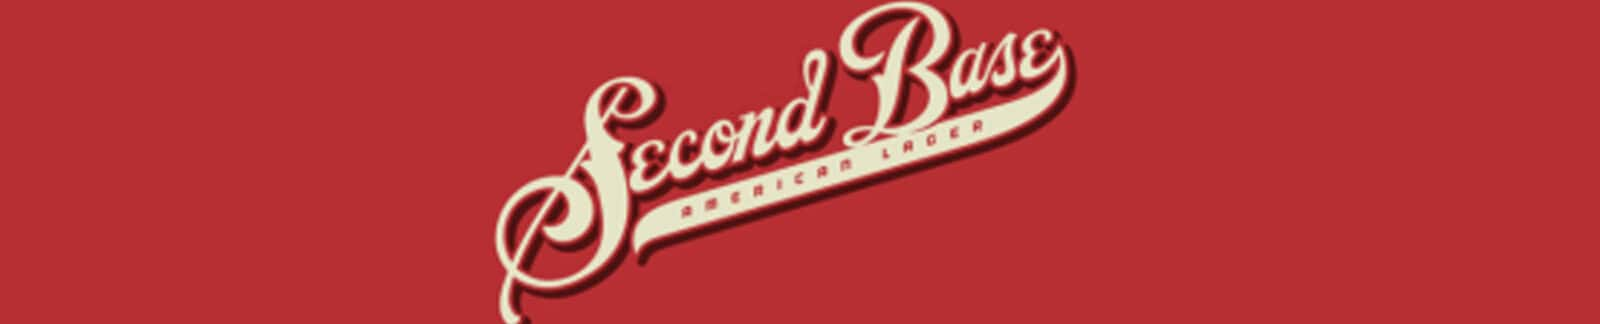 Second Base American Lager header